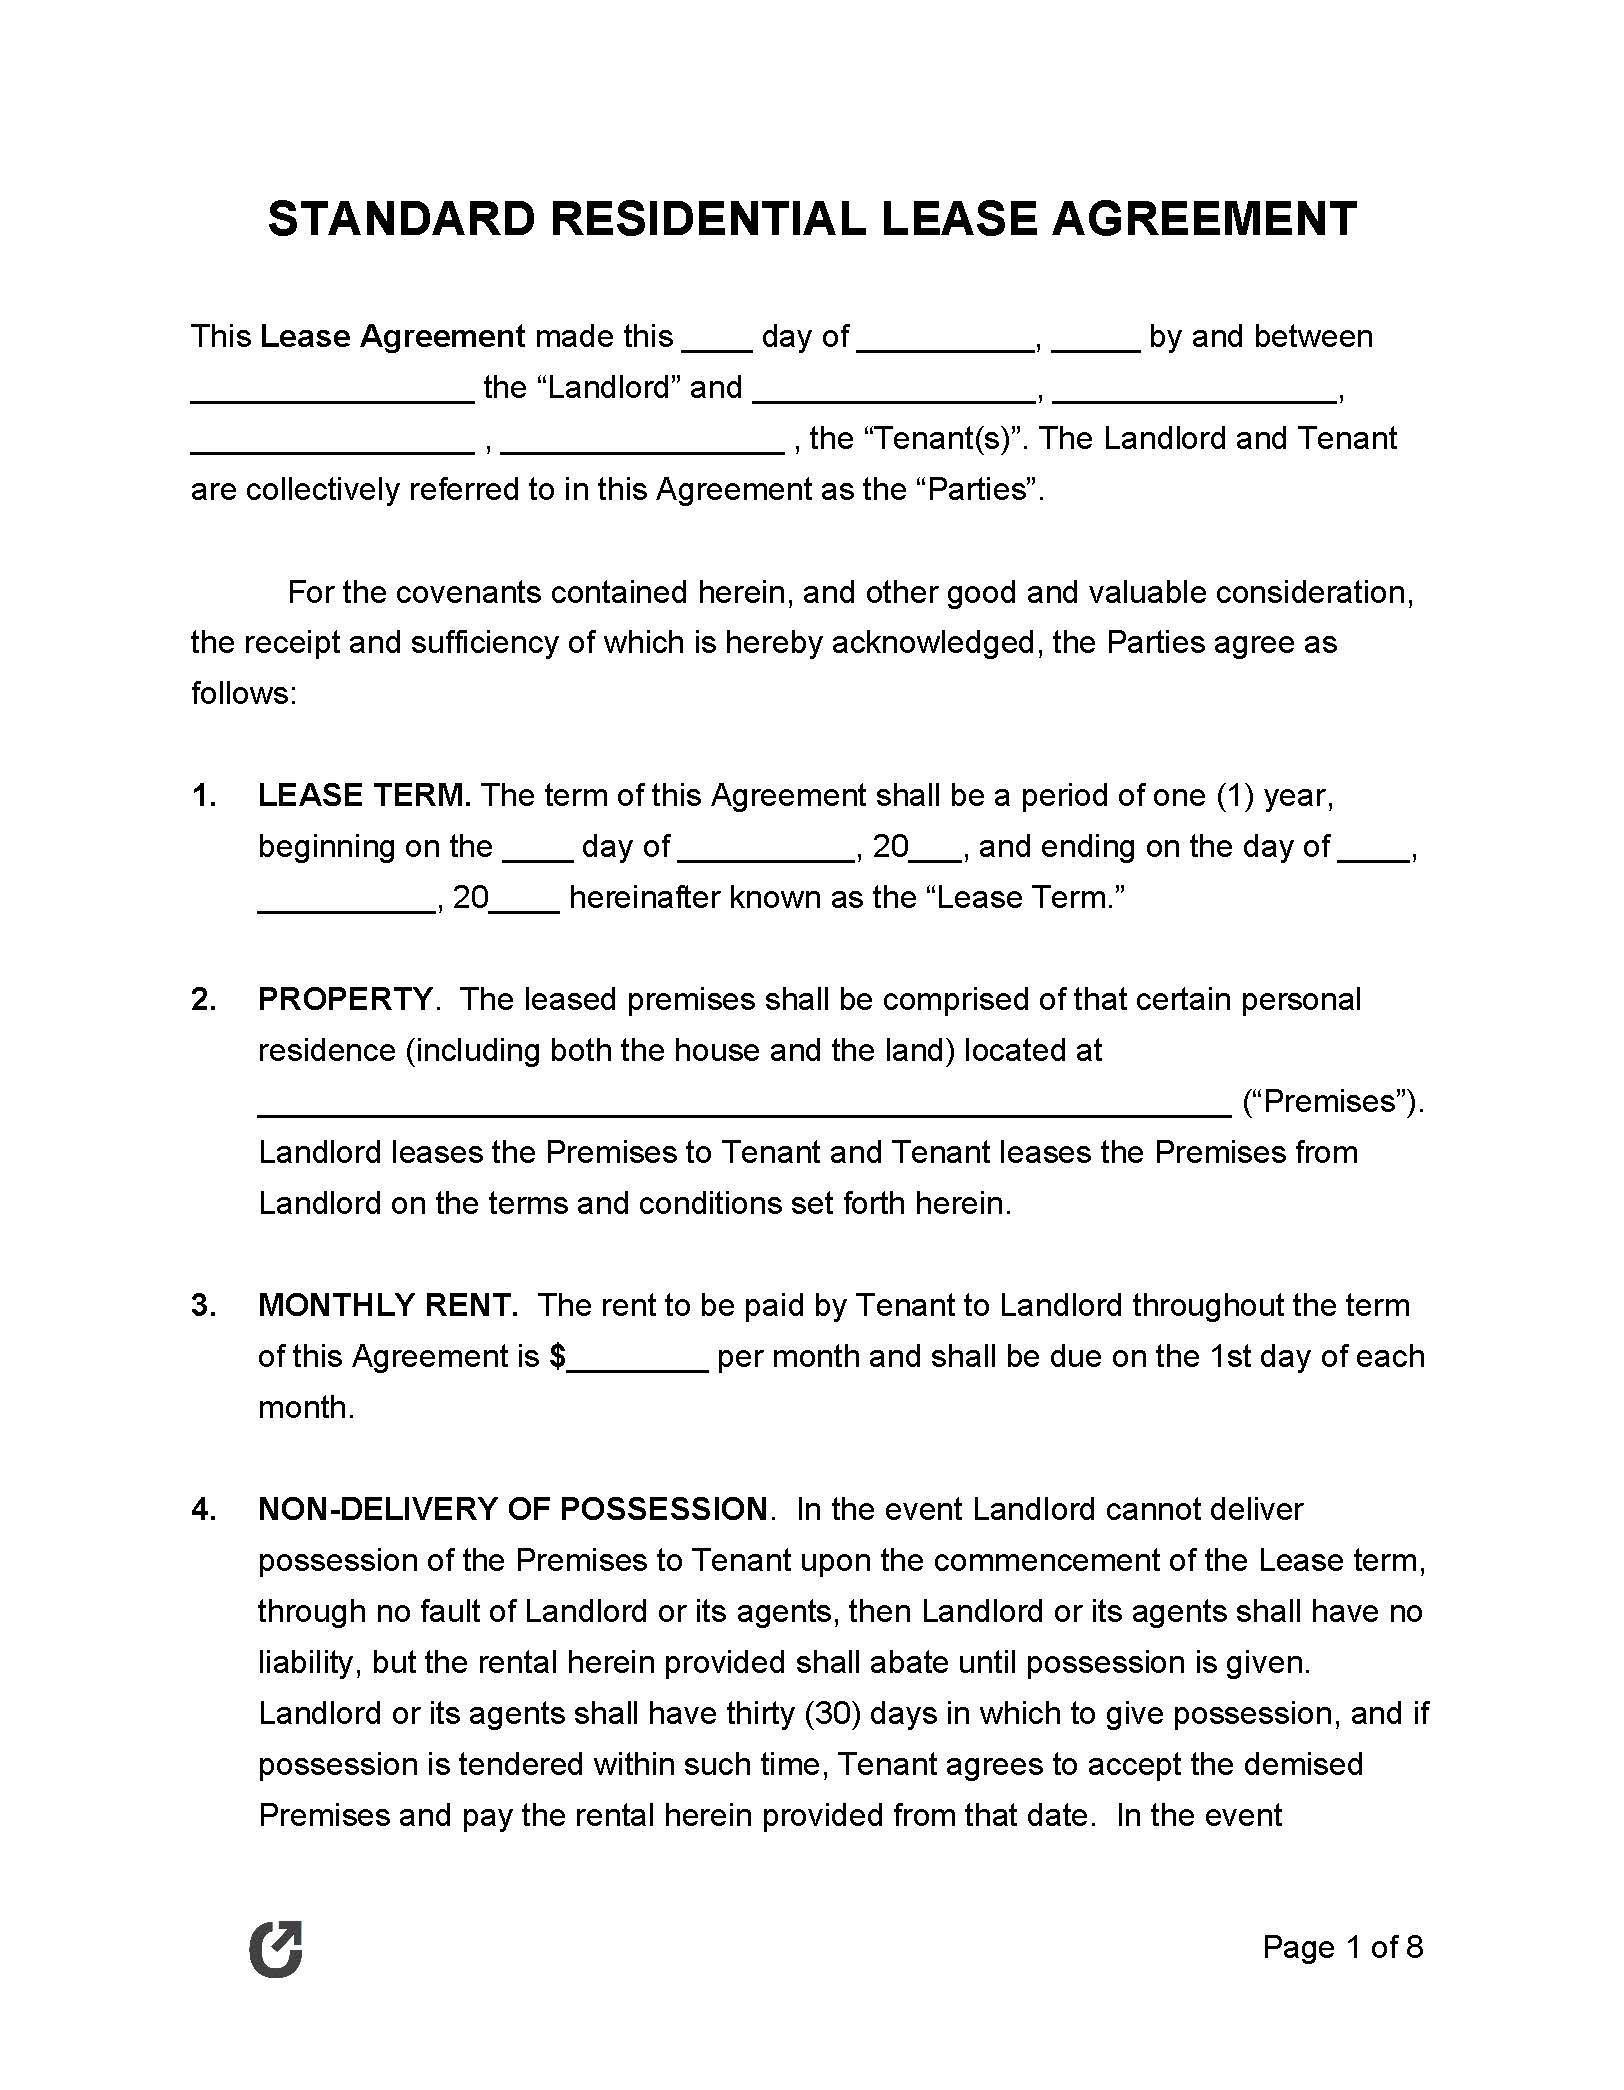 009 Singular Housing Rental Agreement Template Free High Resolution Full